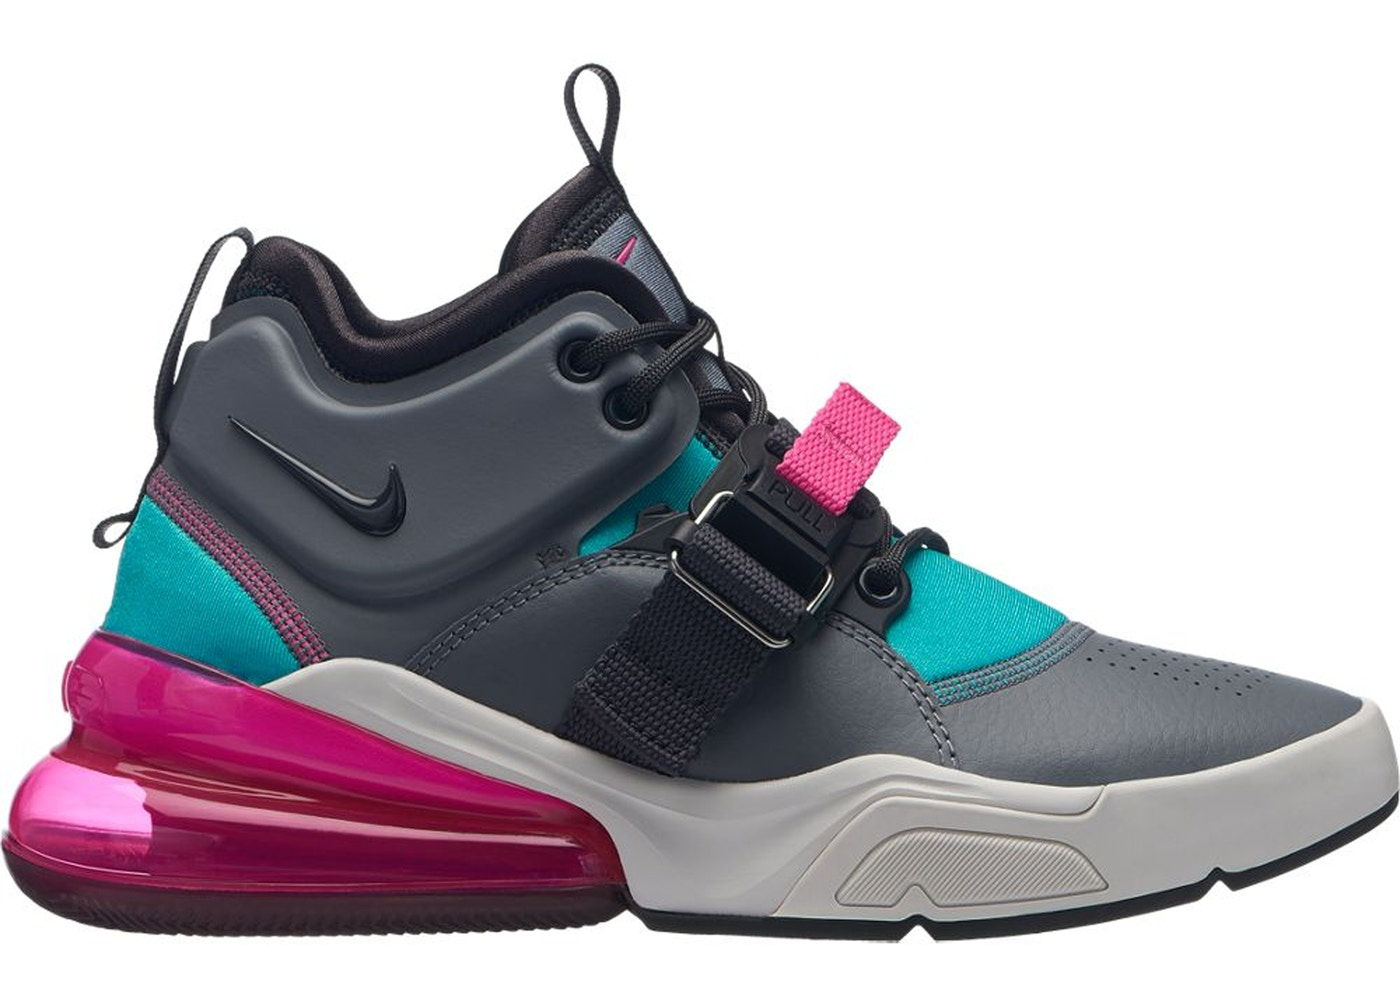 newest 90c30 f1639 Buy Nike Air Force Other Shoes & Deadstock Sneakers